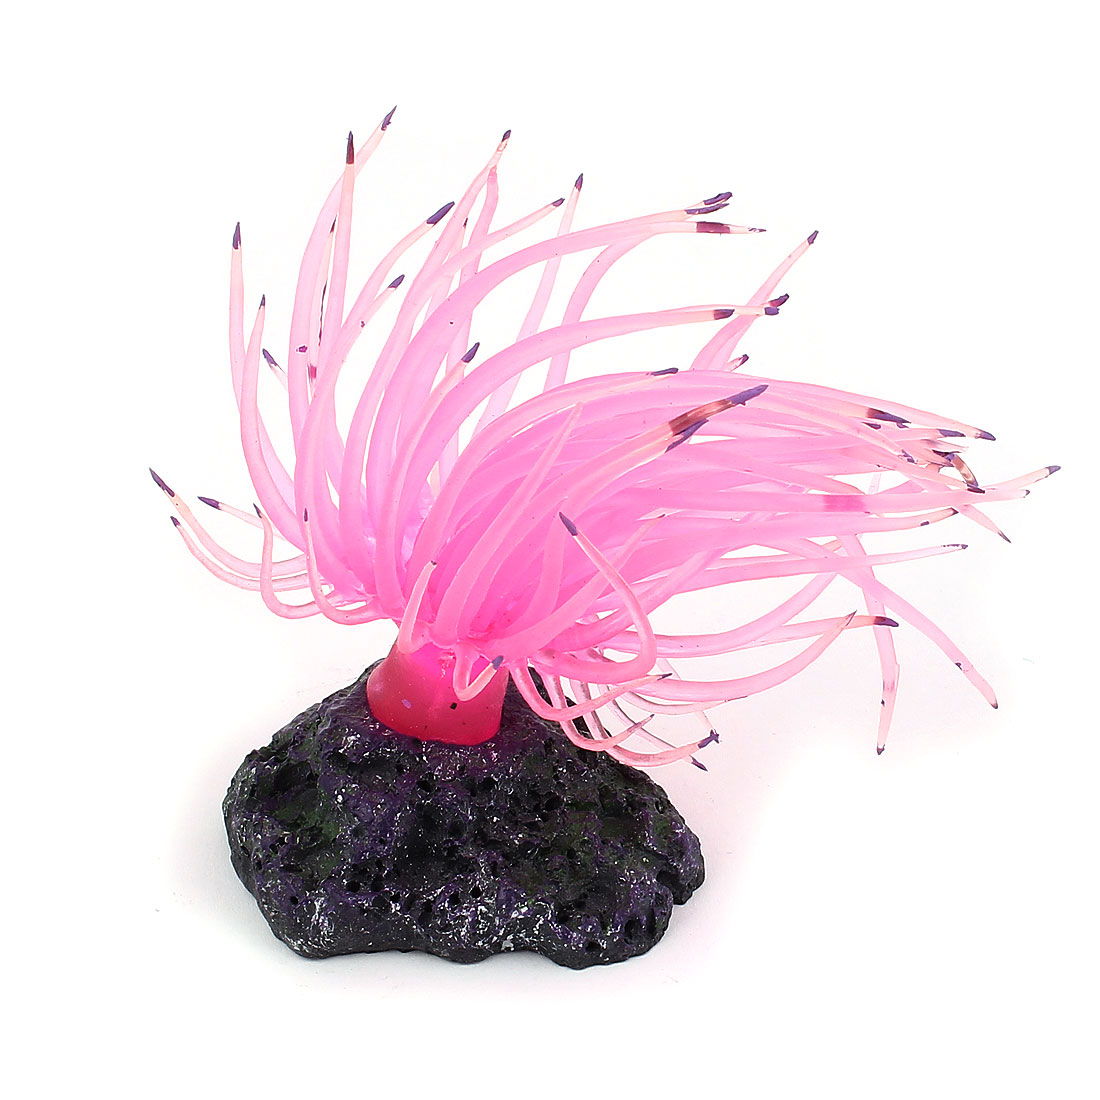 Pink Silicone Ceramic Base Aquarium Coral Ornament Underwater Plant for Fishbowl Fish Tank